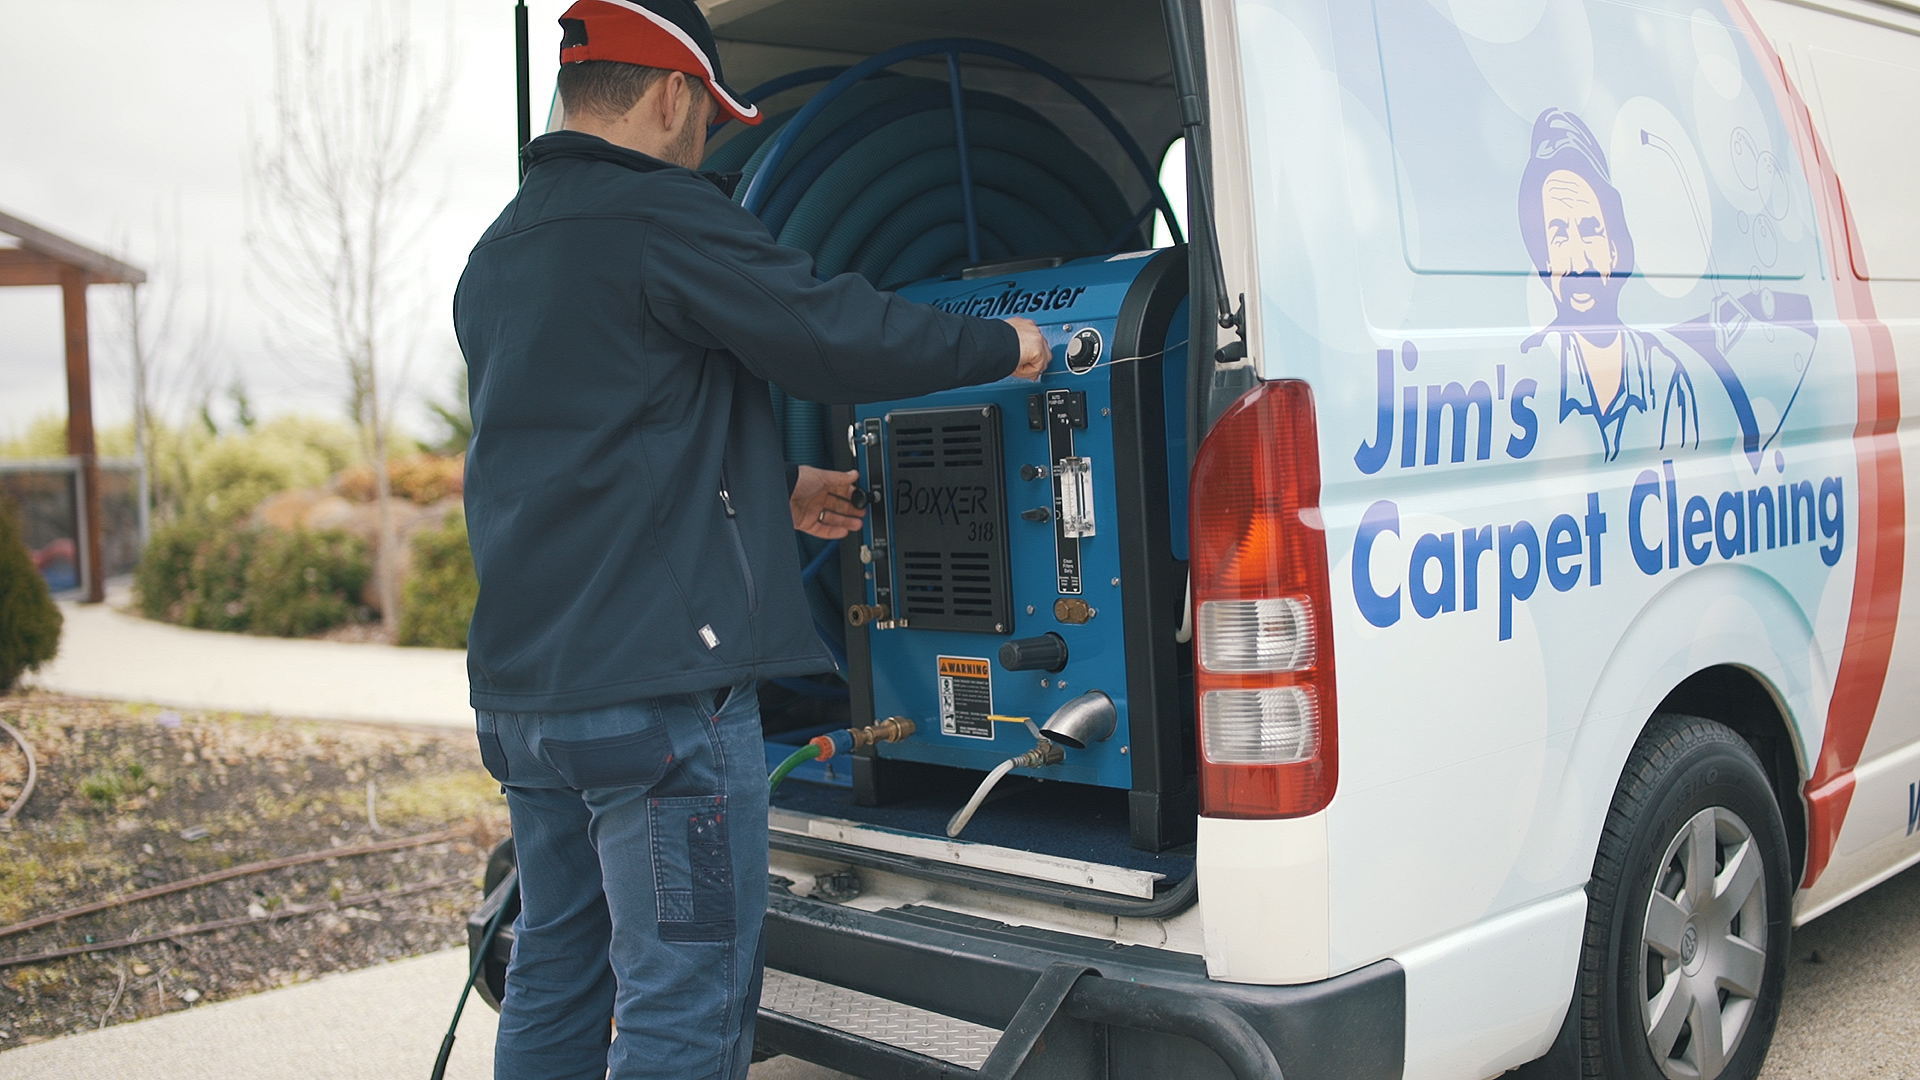 Jim's Carpet Cleaning Blackburn